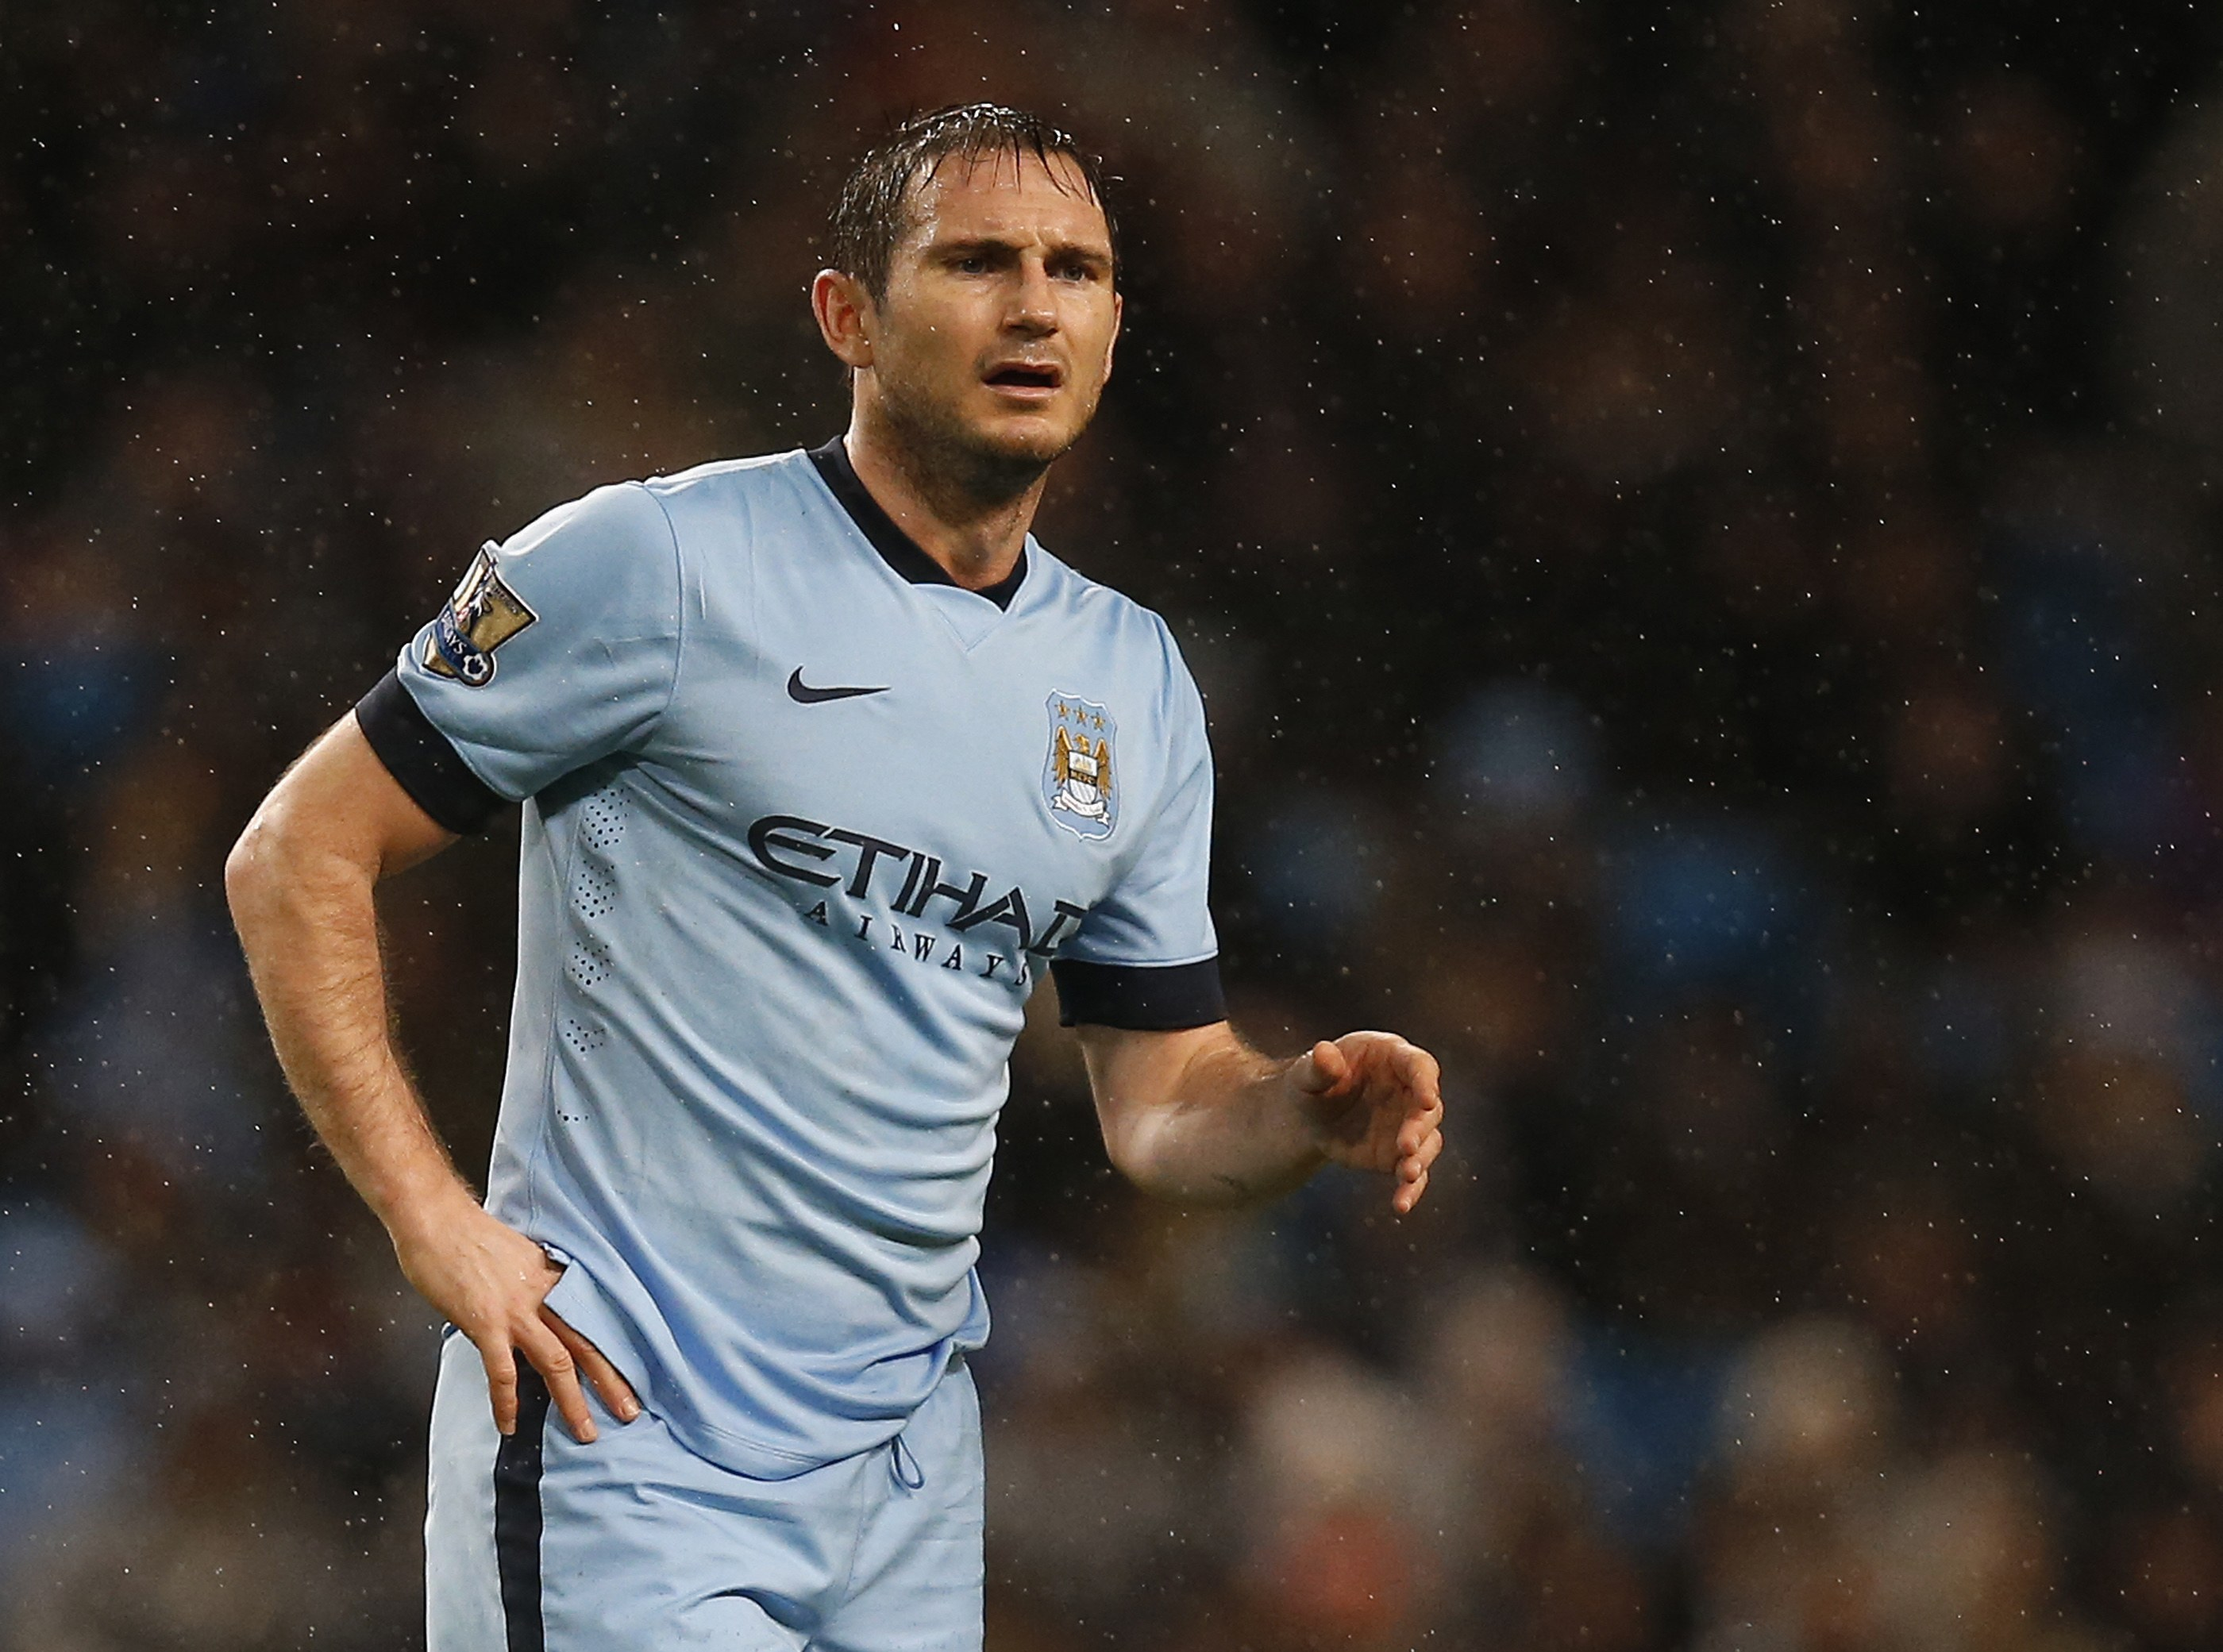 Chelsea legend Frank Lampard is now vital to Manchester City s